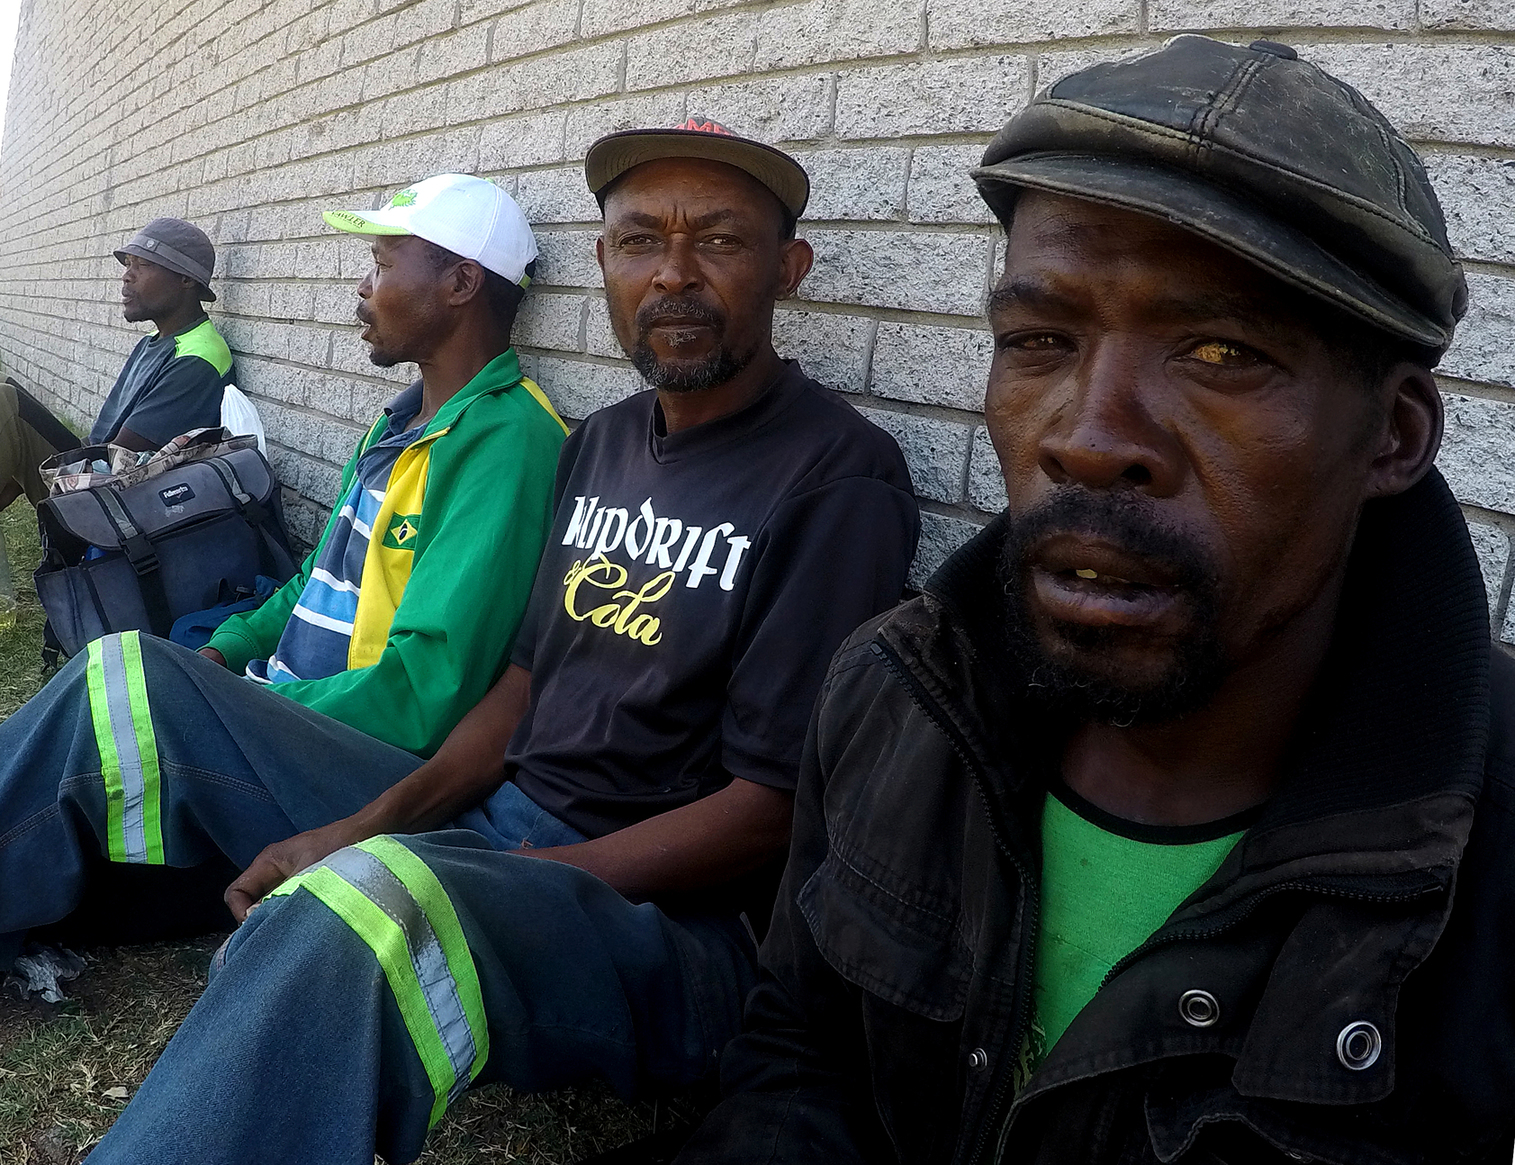 Waiting and hoping the whole day for work | GroundUp